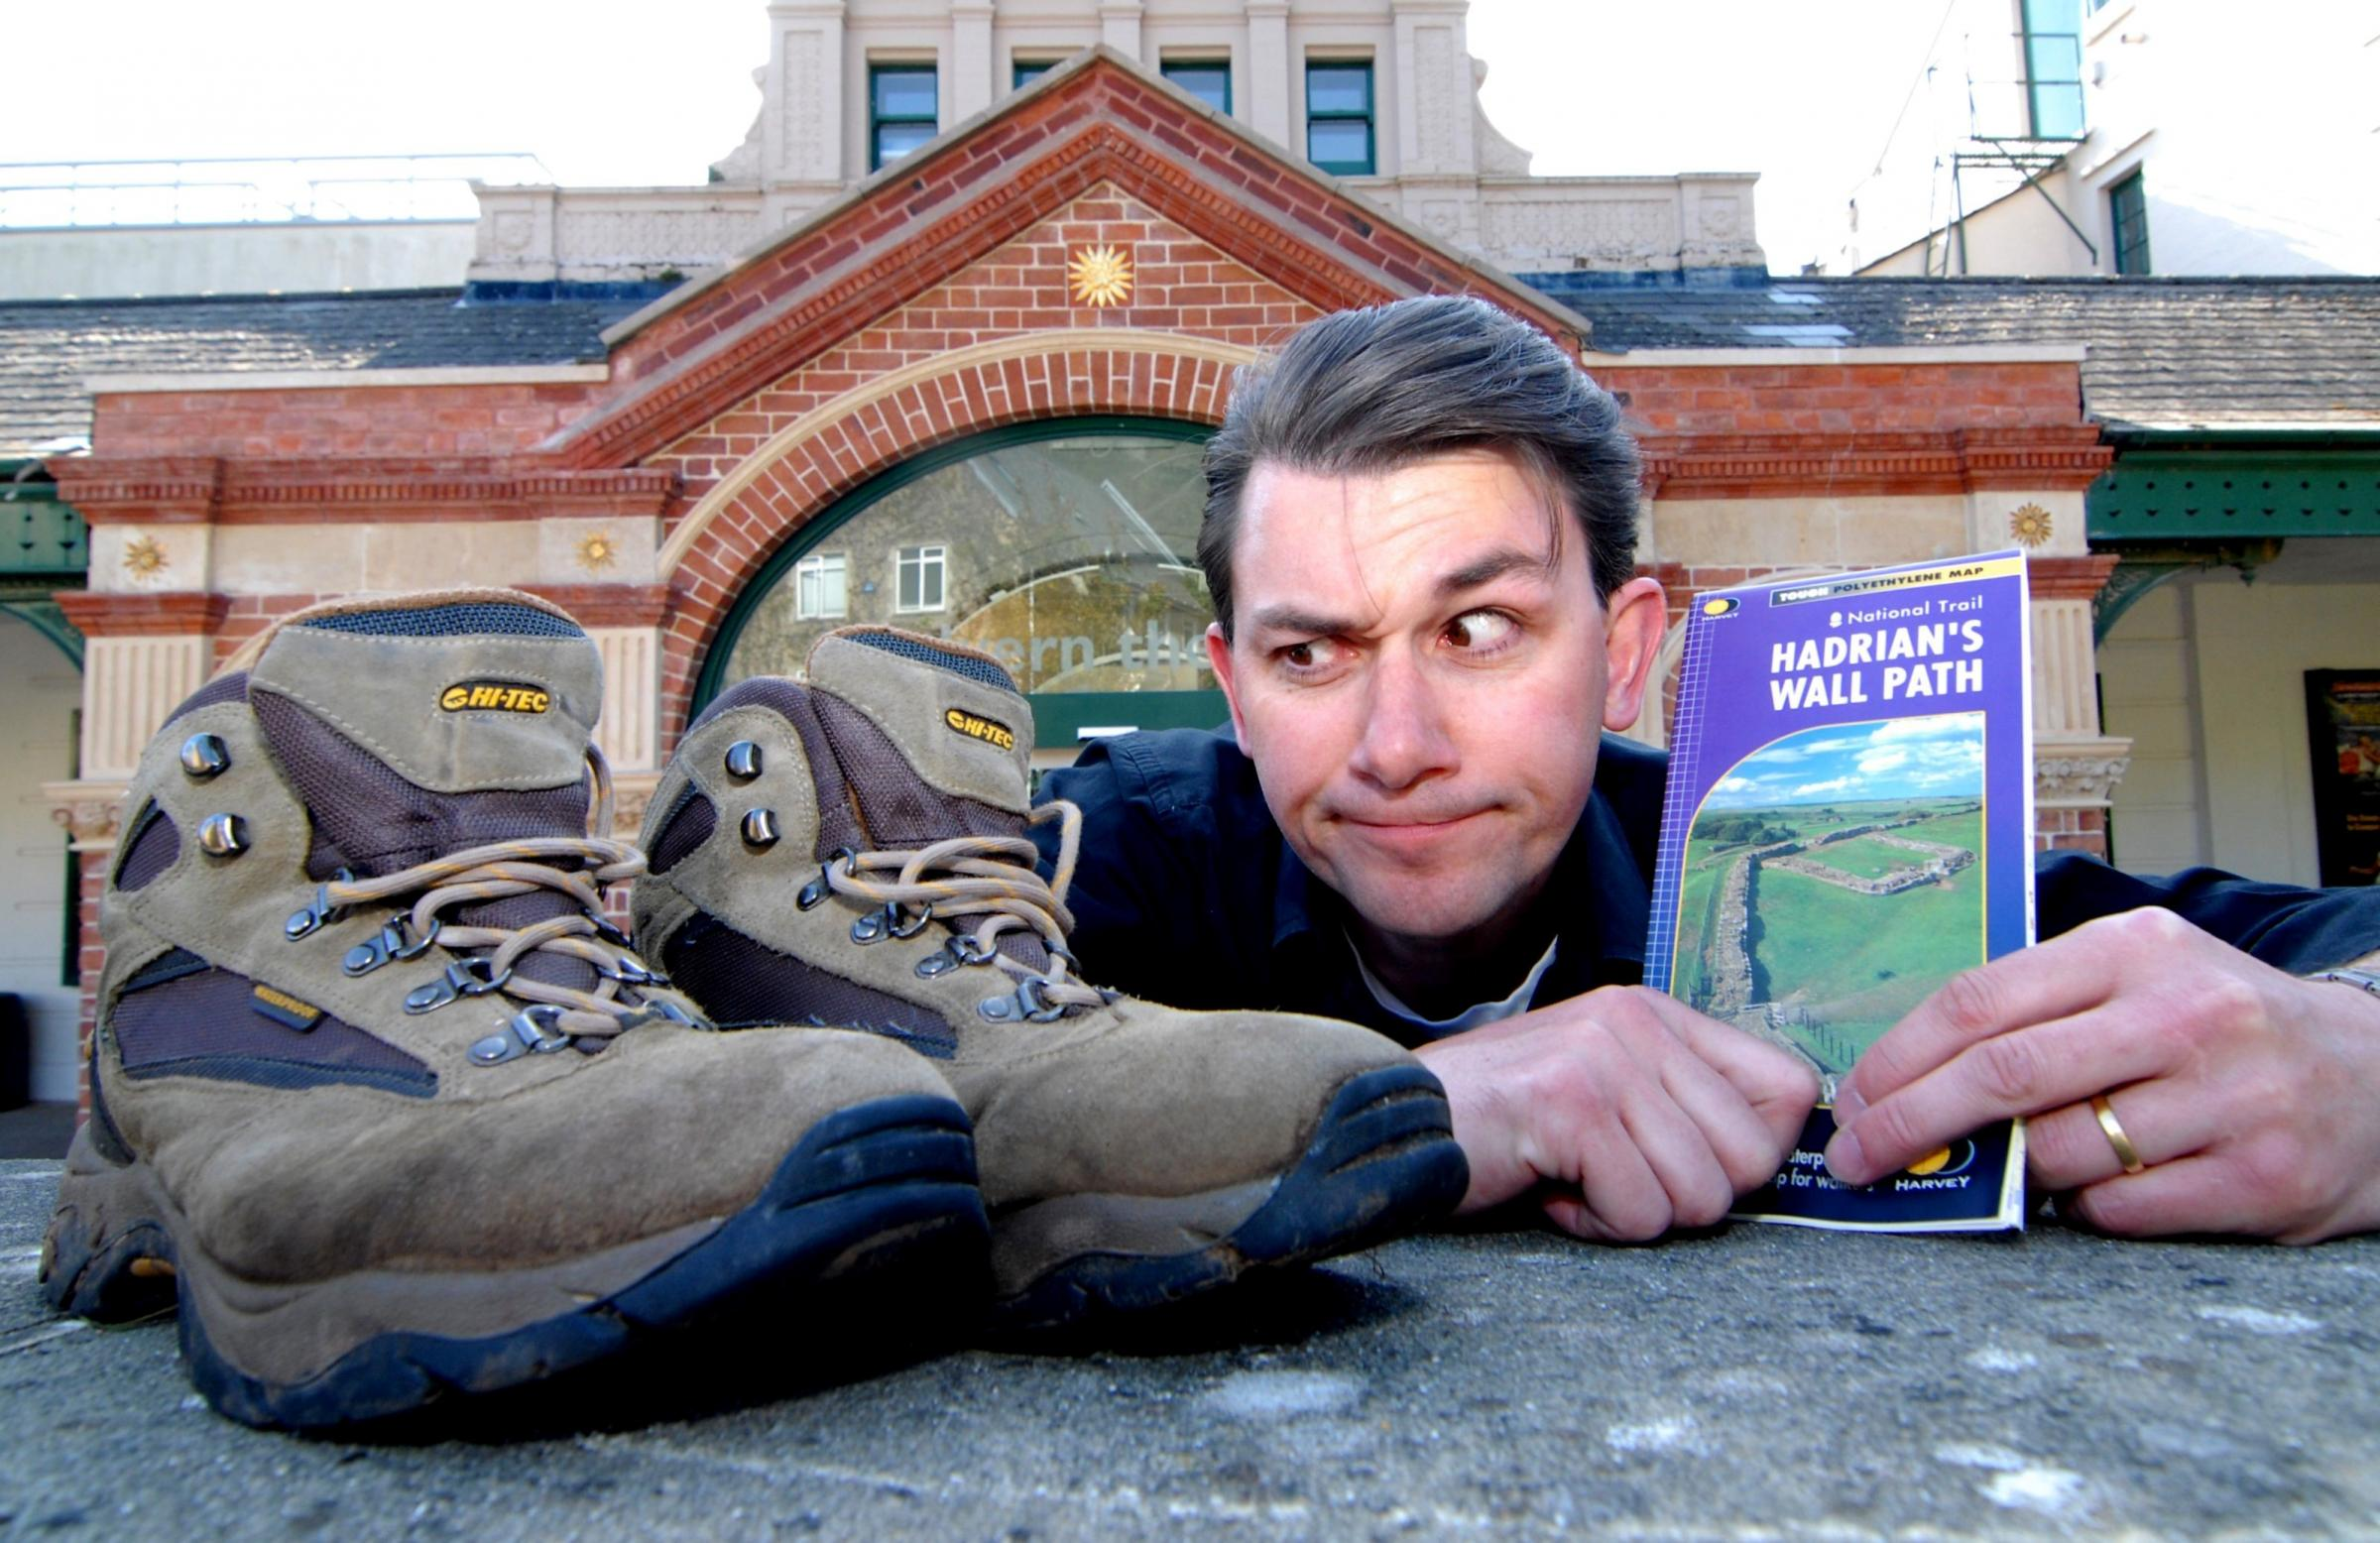 Playwright's walking challenge will bring inspiration and funds